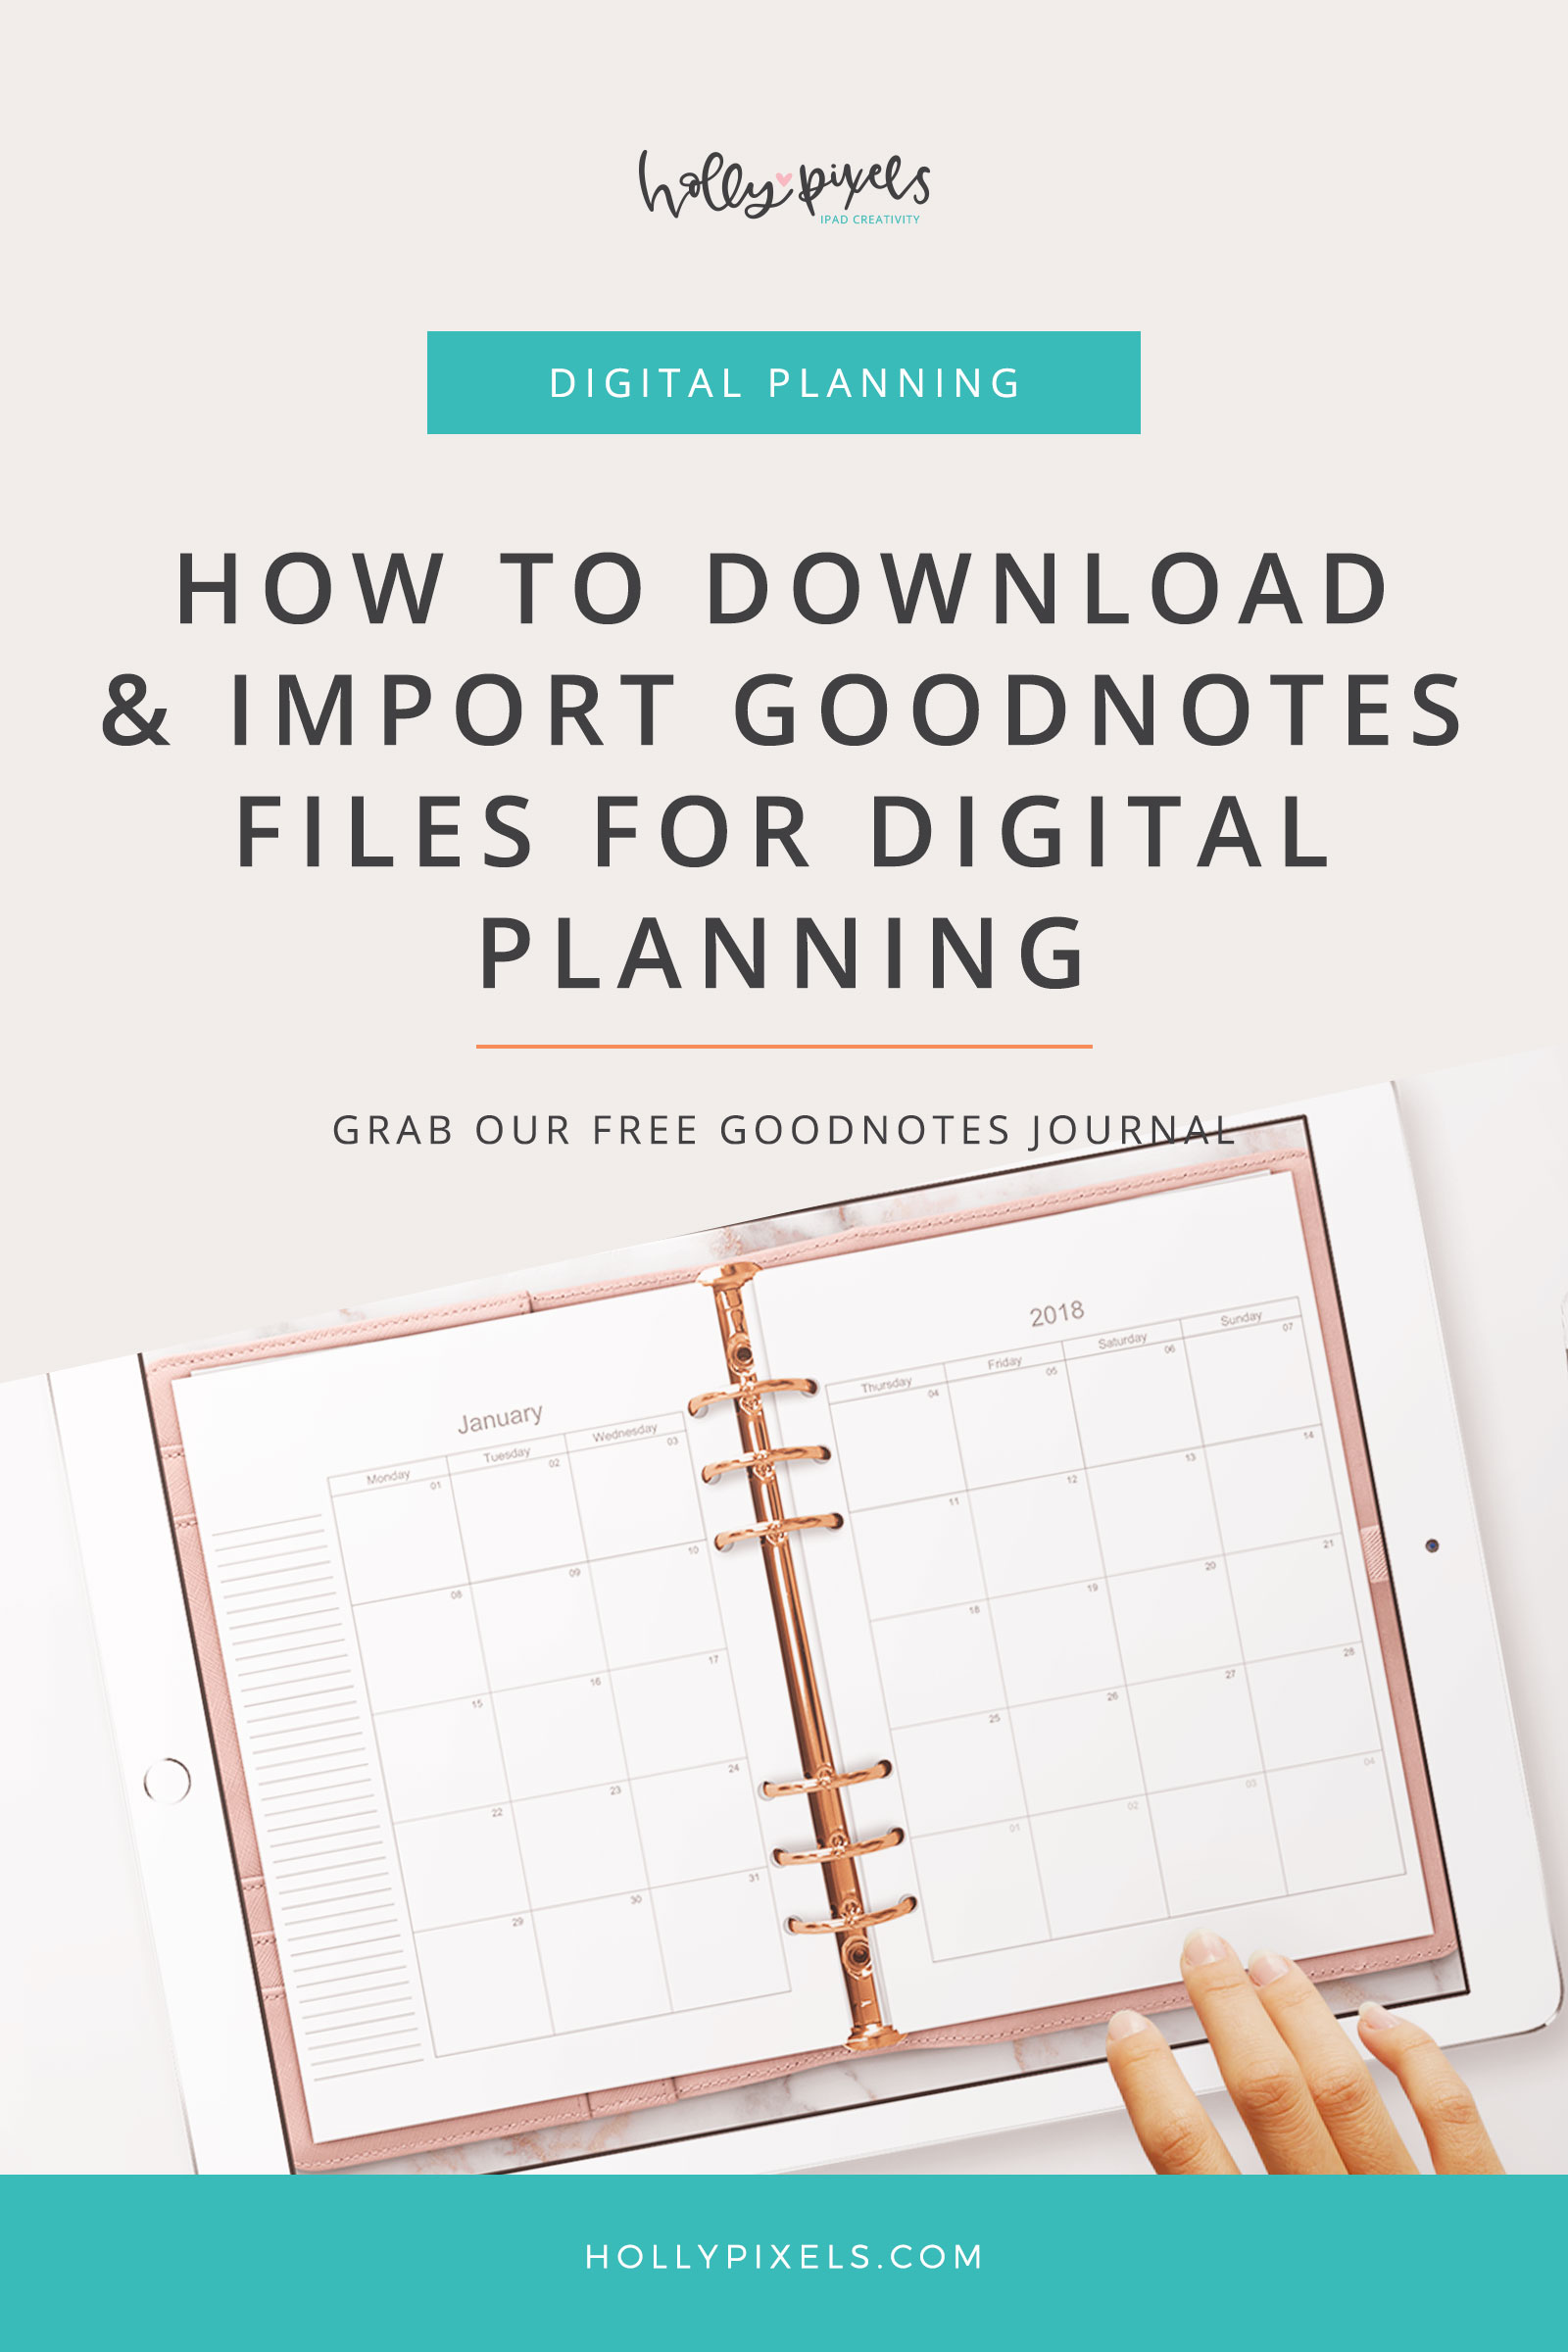 GoodNotes is an amazing app for Digital planning and is trendy about digital planners right now. Here's how easy it is to load GoodNotes files into your app and get started planning on your iPad!